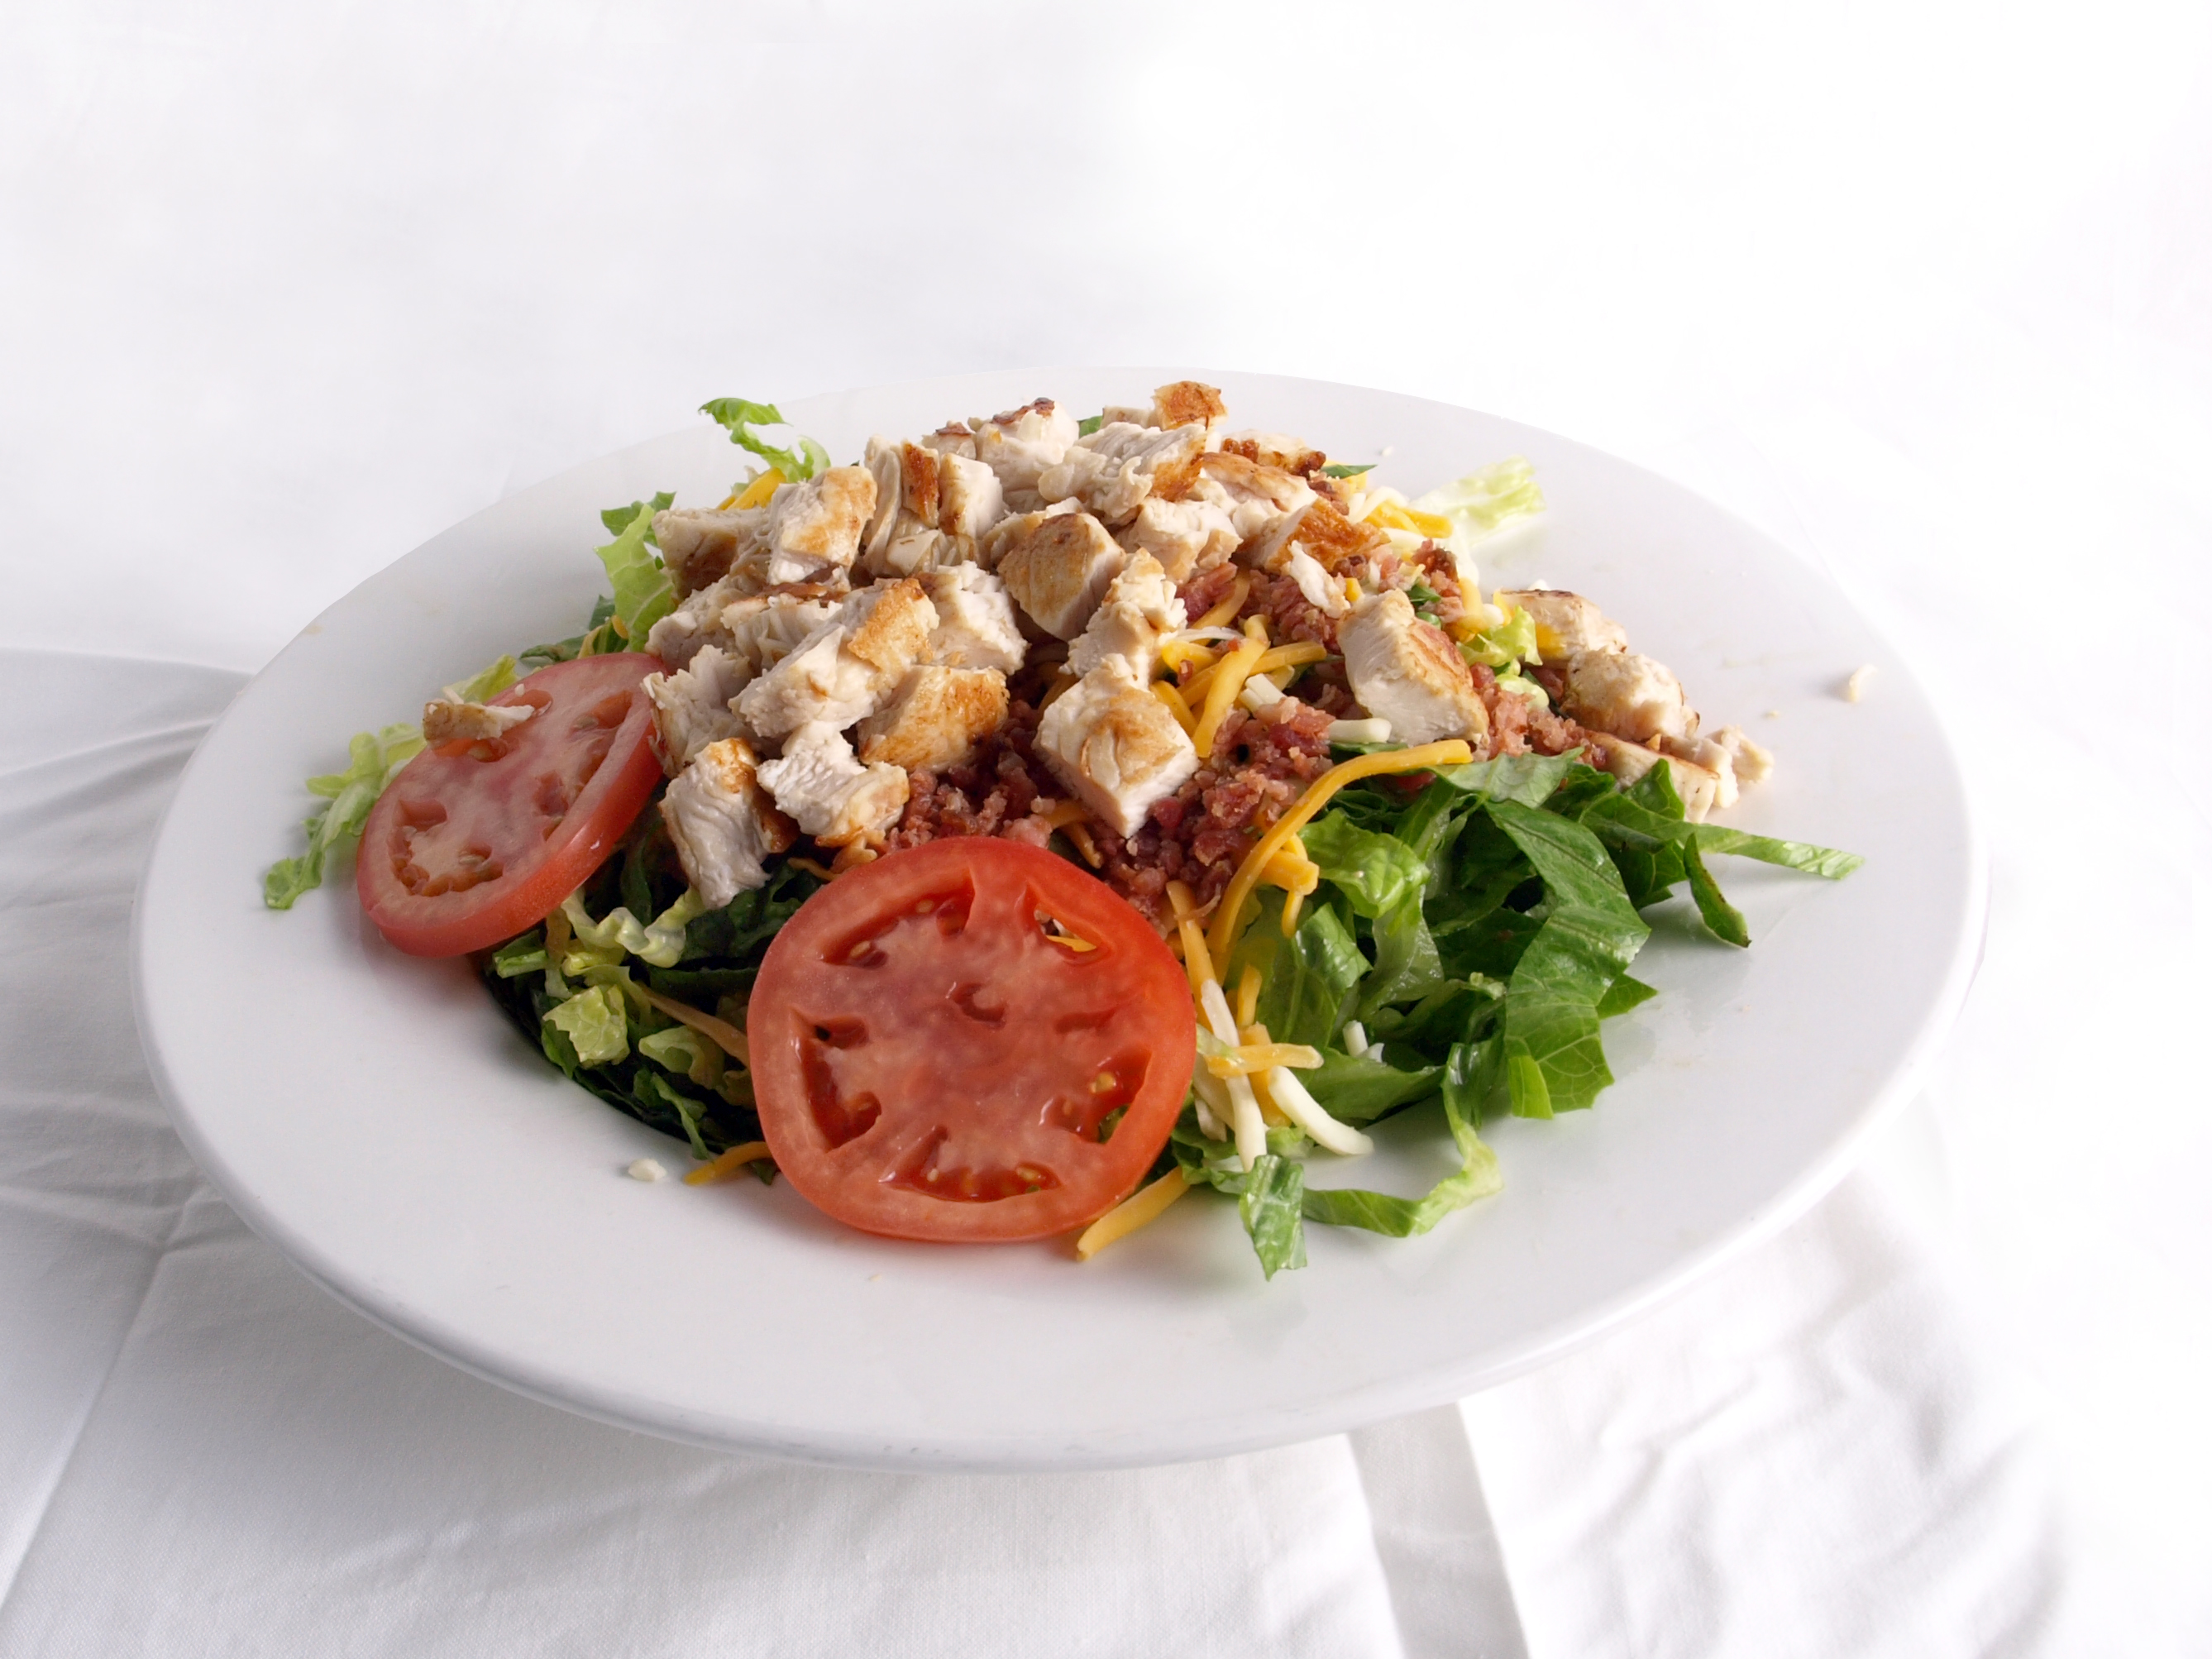 Grilled chicken salad with tomatoes, bacon and cheese